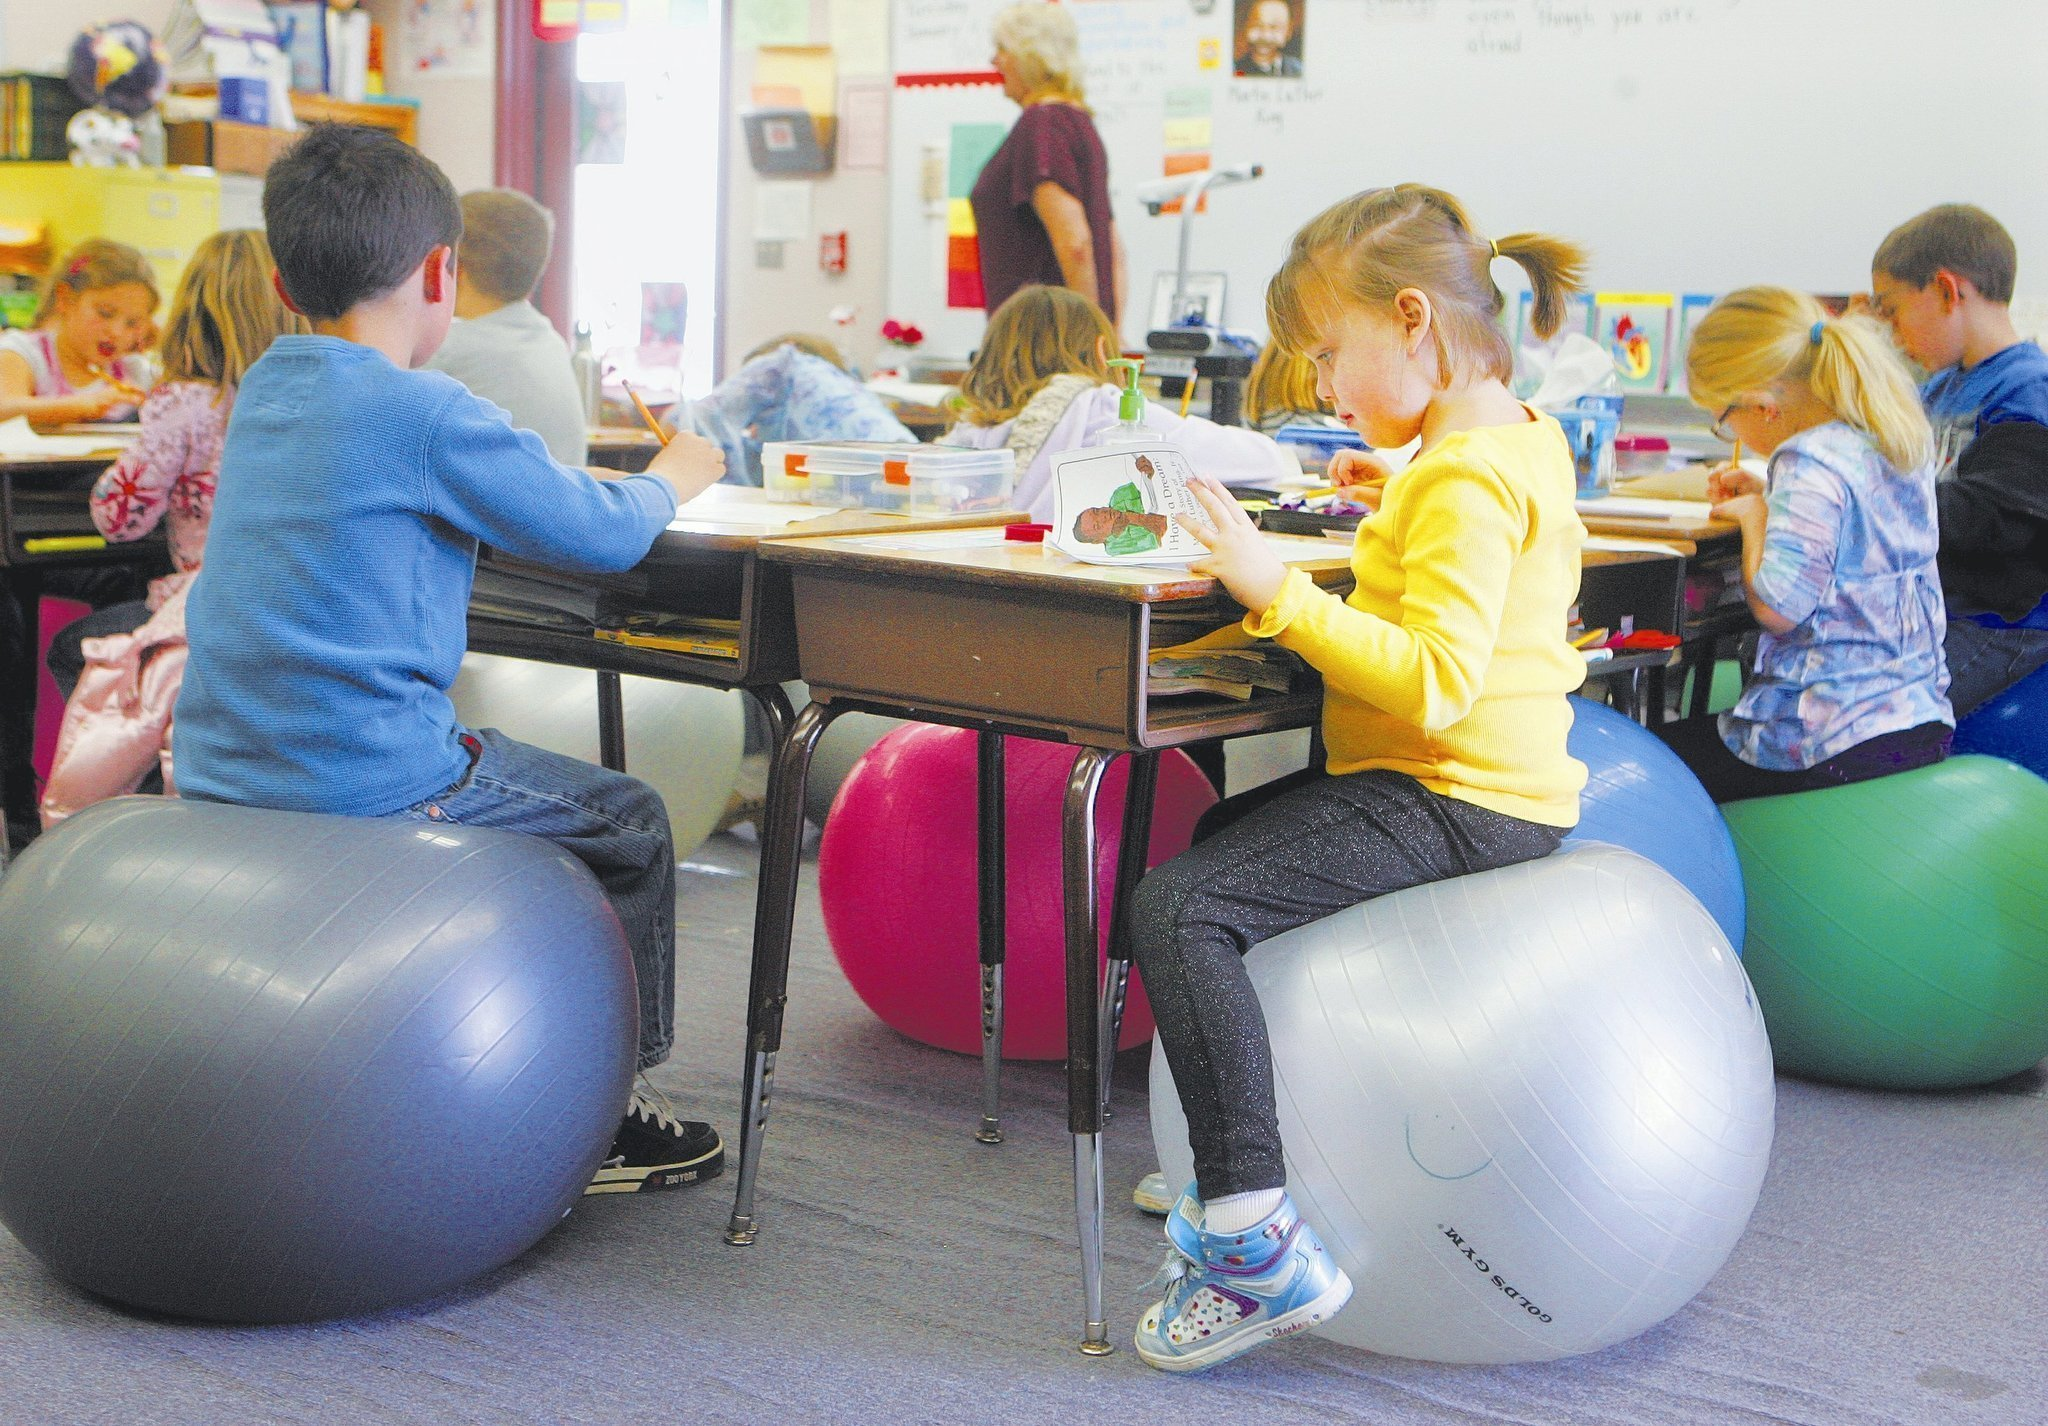 Ramona teachers let students trade chairs for exercise balls The